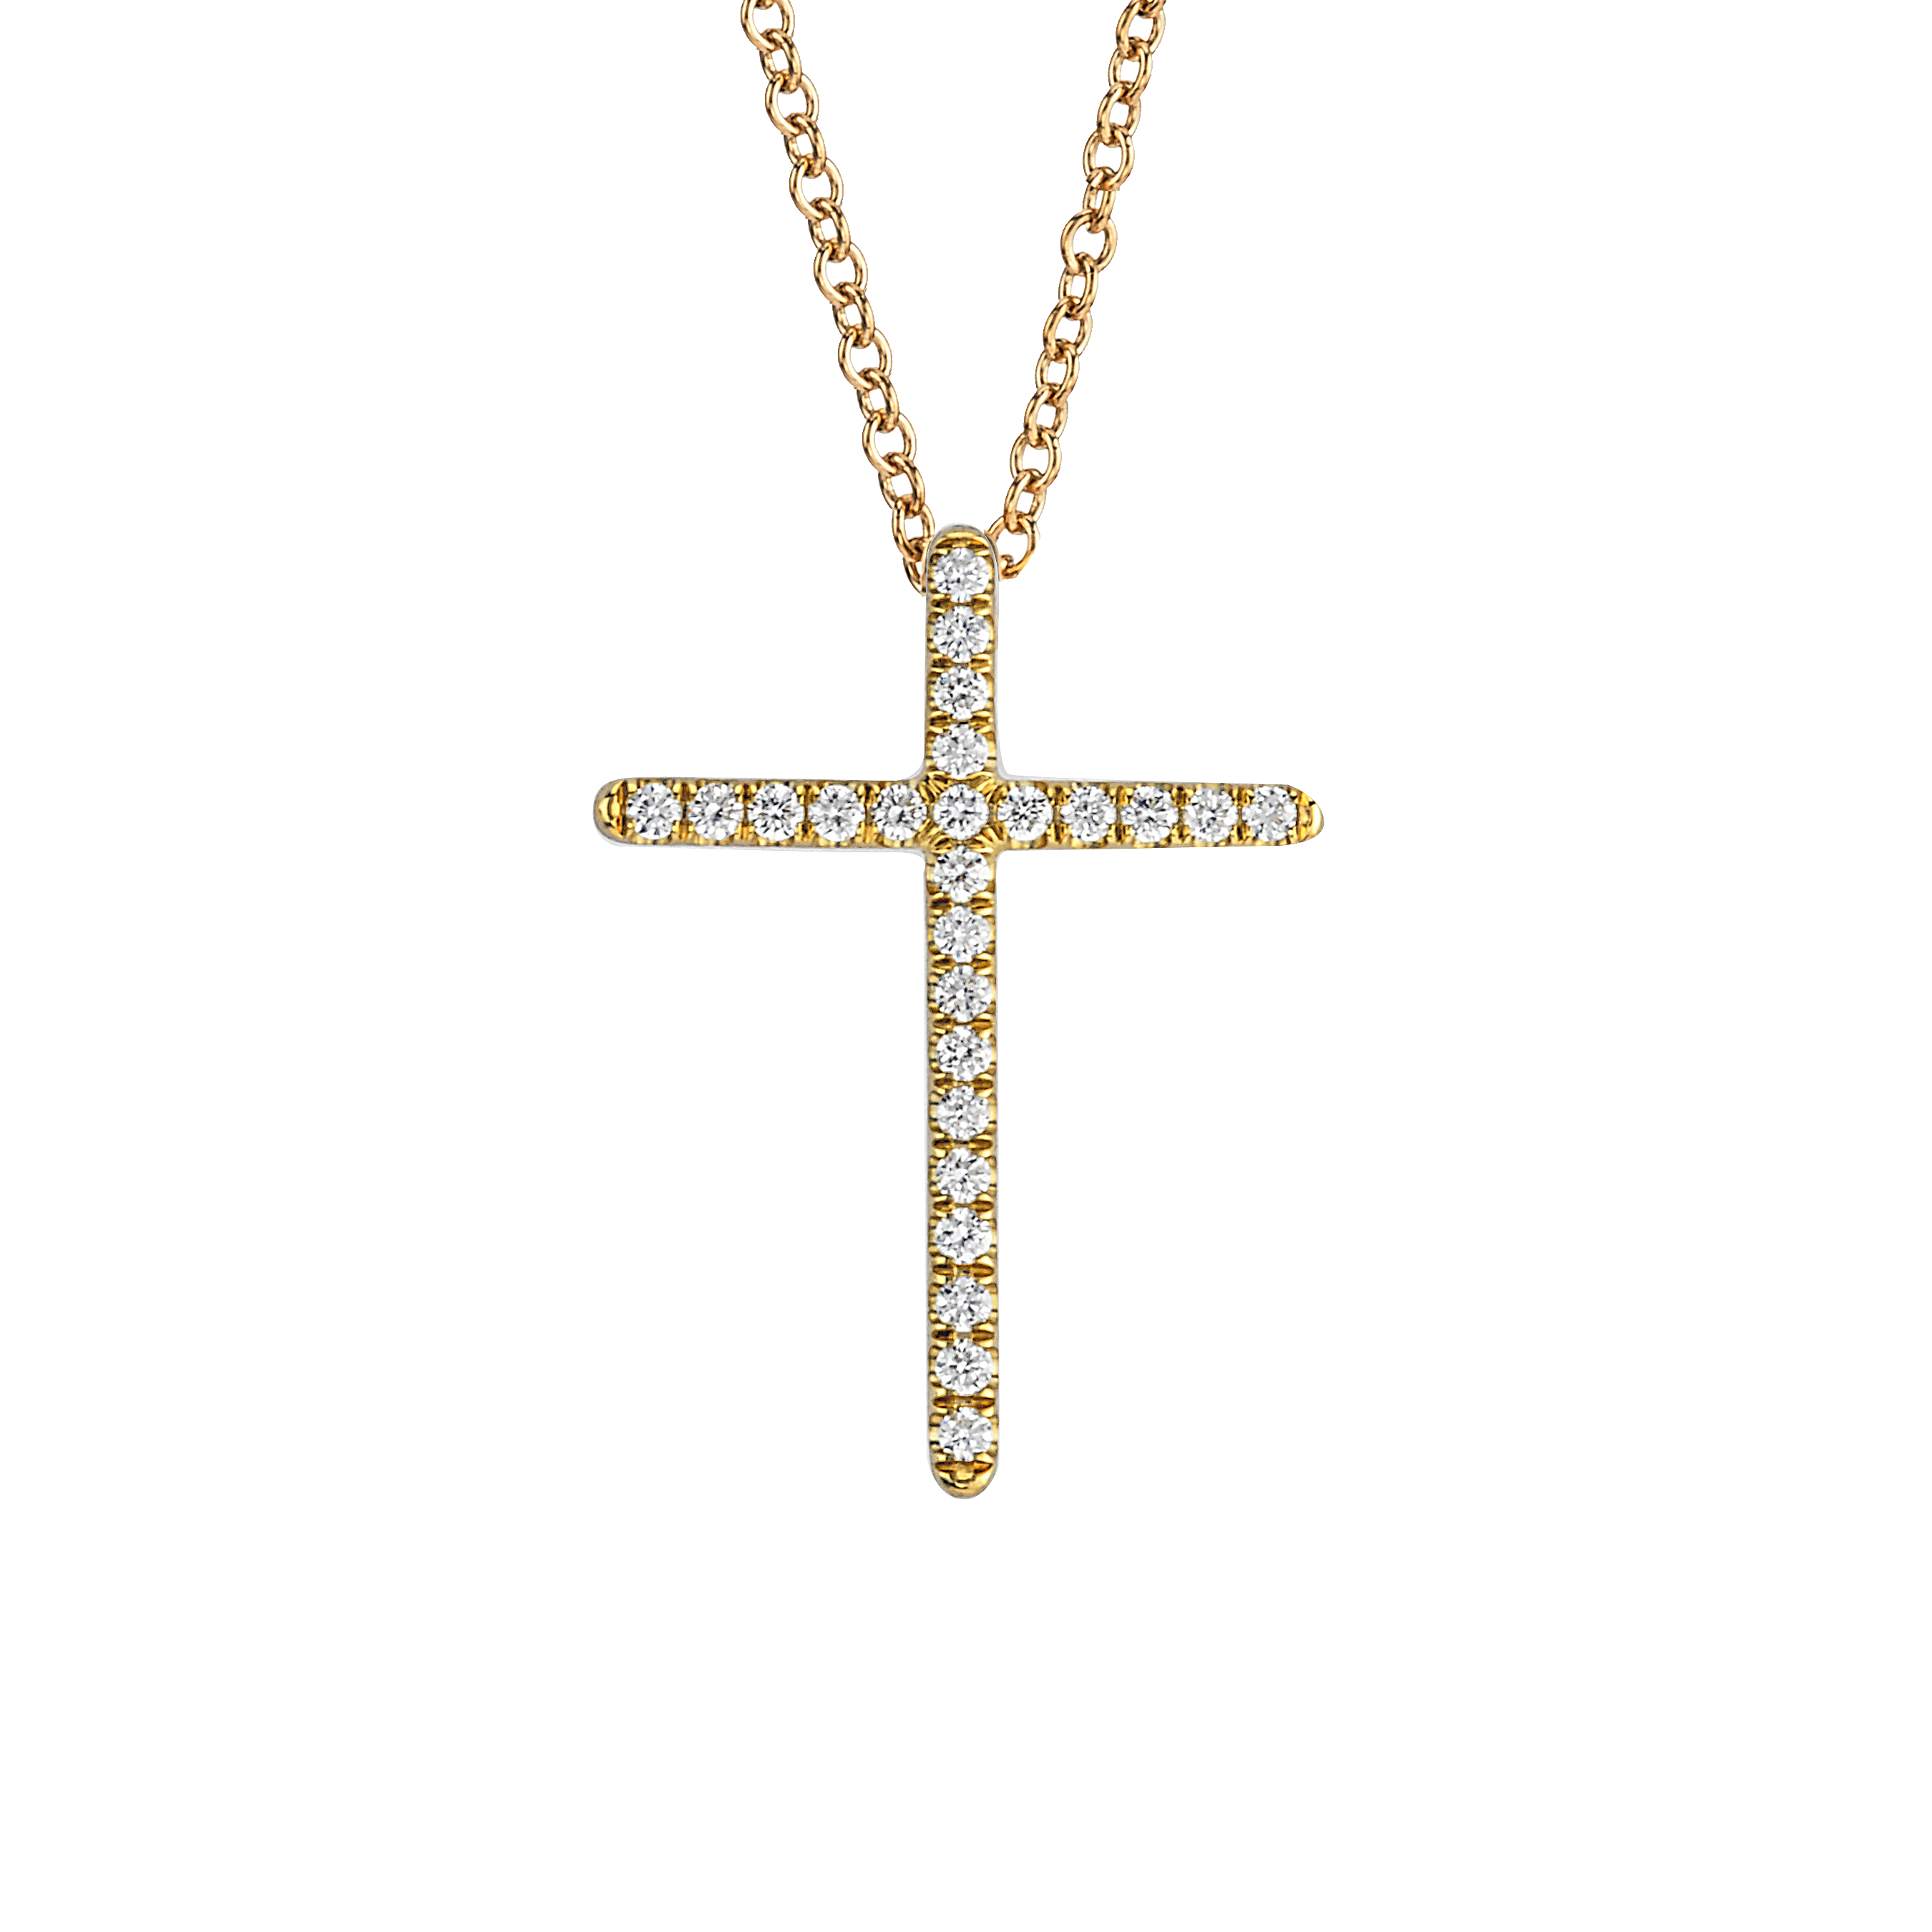 Small chain png. Necklace cross yellow gold